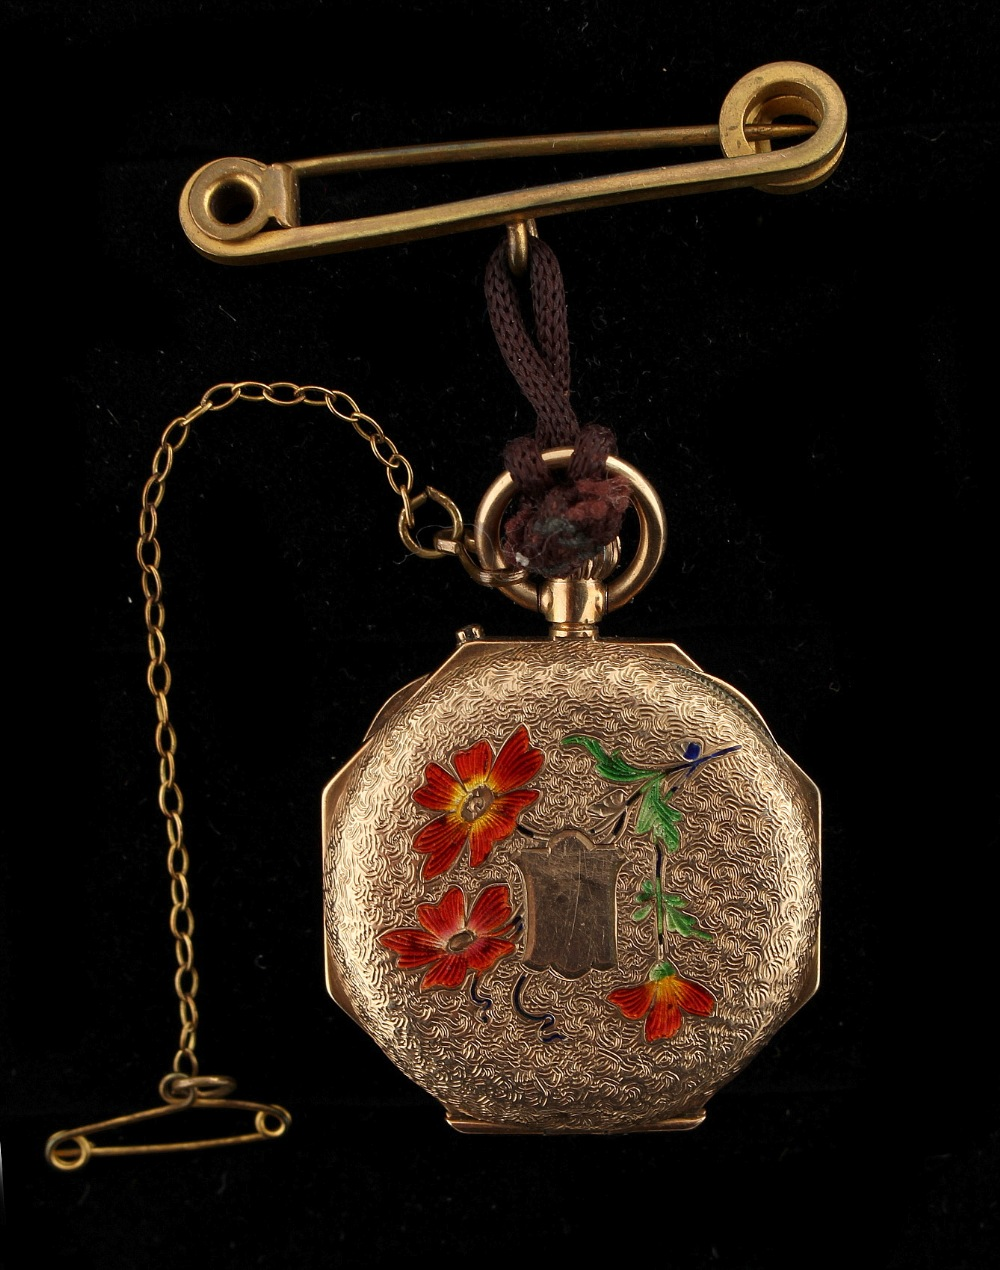 Property of a deceased estate - a 9ct gold cased fob watch with enamel floral decoration, - Image 2 of 2